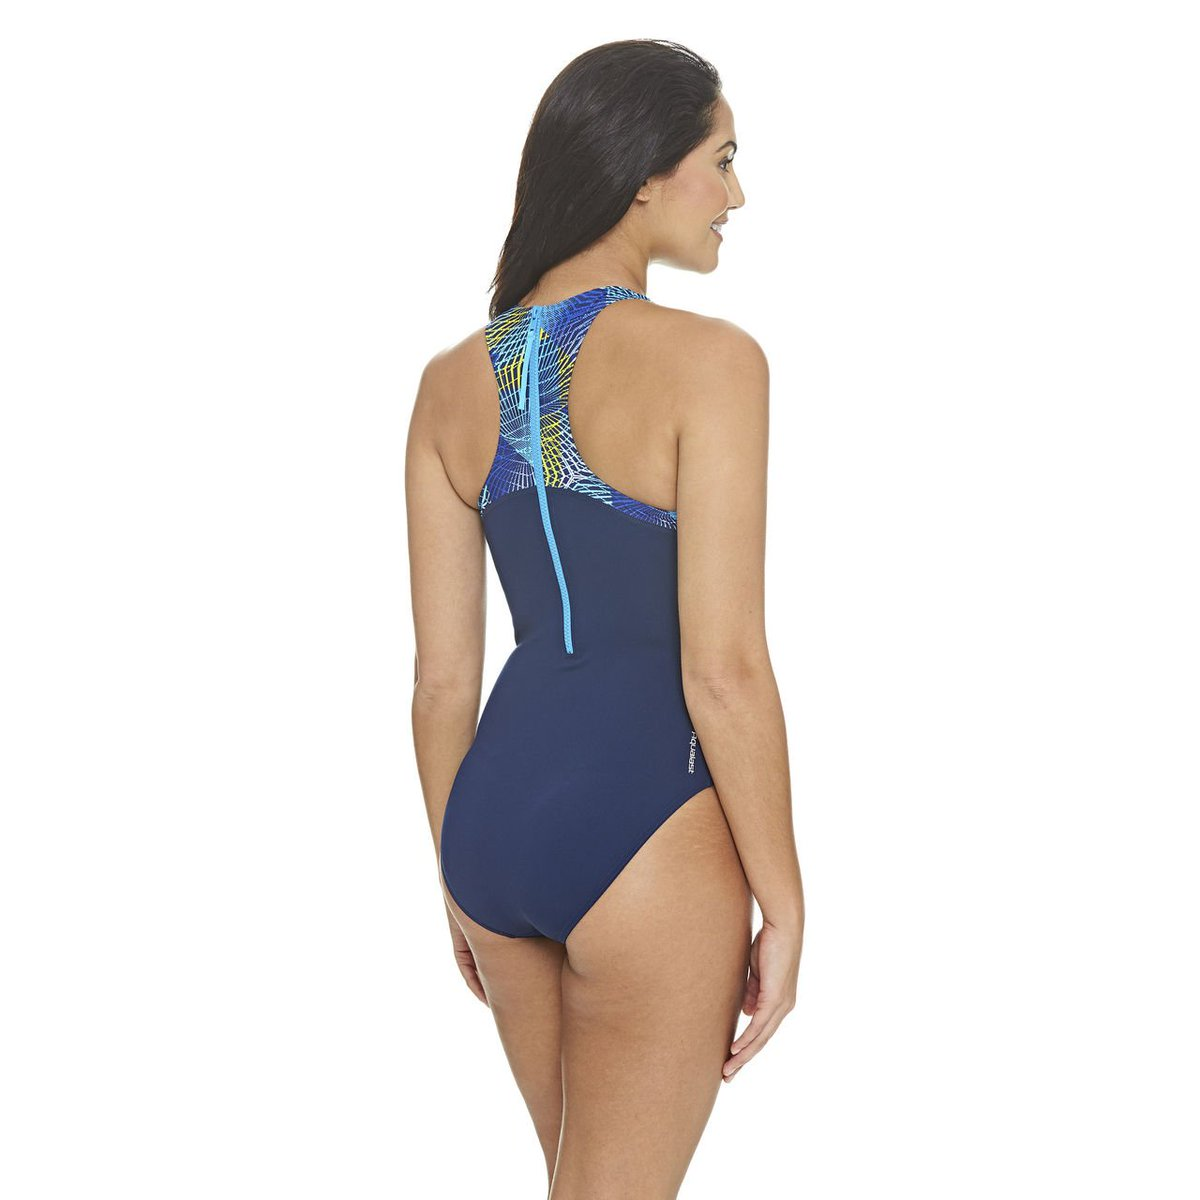 57d352ecdd7 The Spiro Spiro Zippedback Swimsuit has a high neck and back for a more  hydro-dynamic swim, high leg height and an extended zip back  https://bit.ly/2wMBERF ...